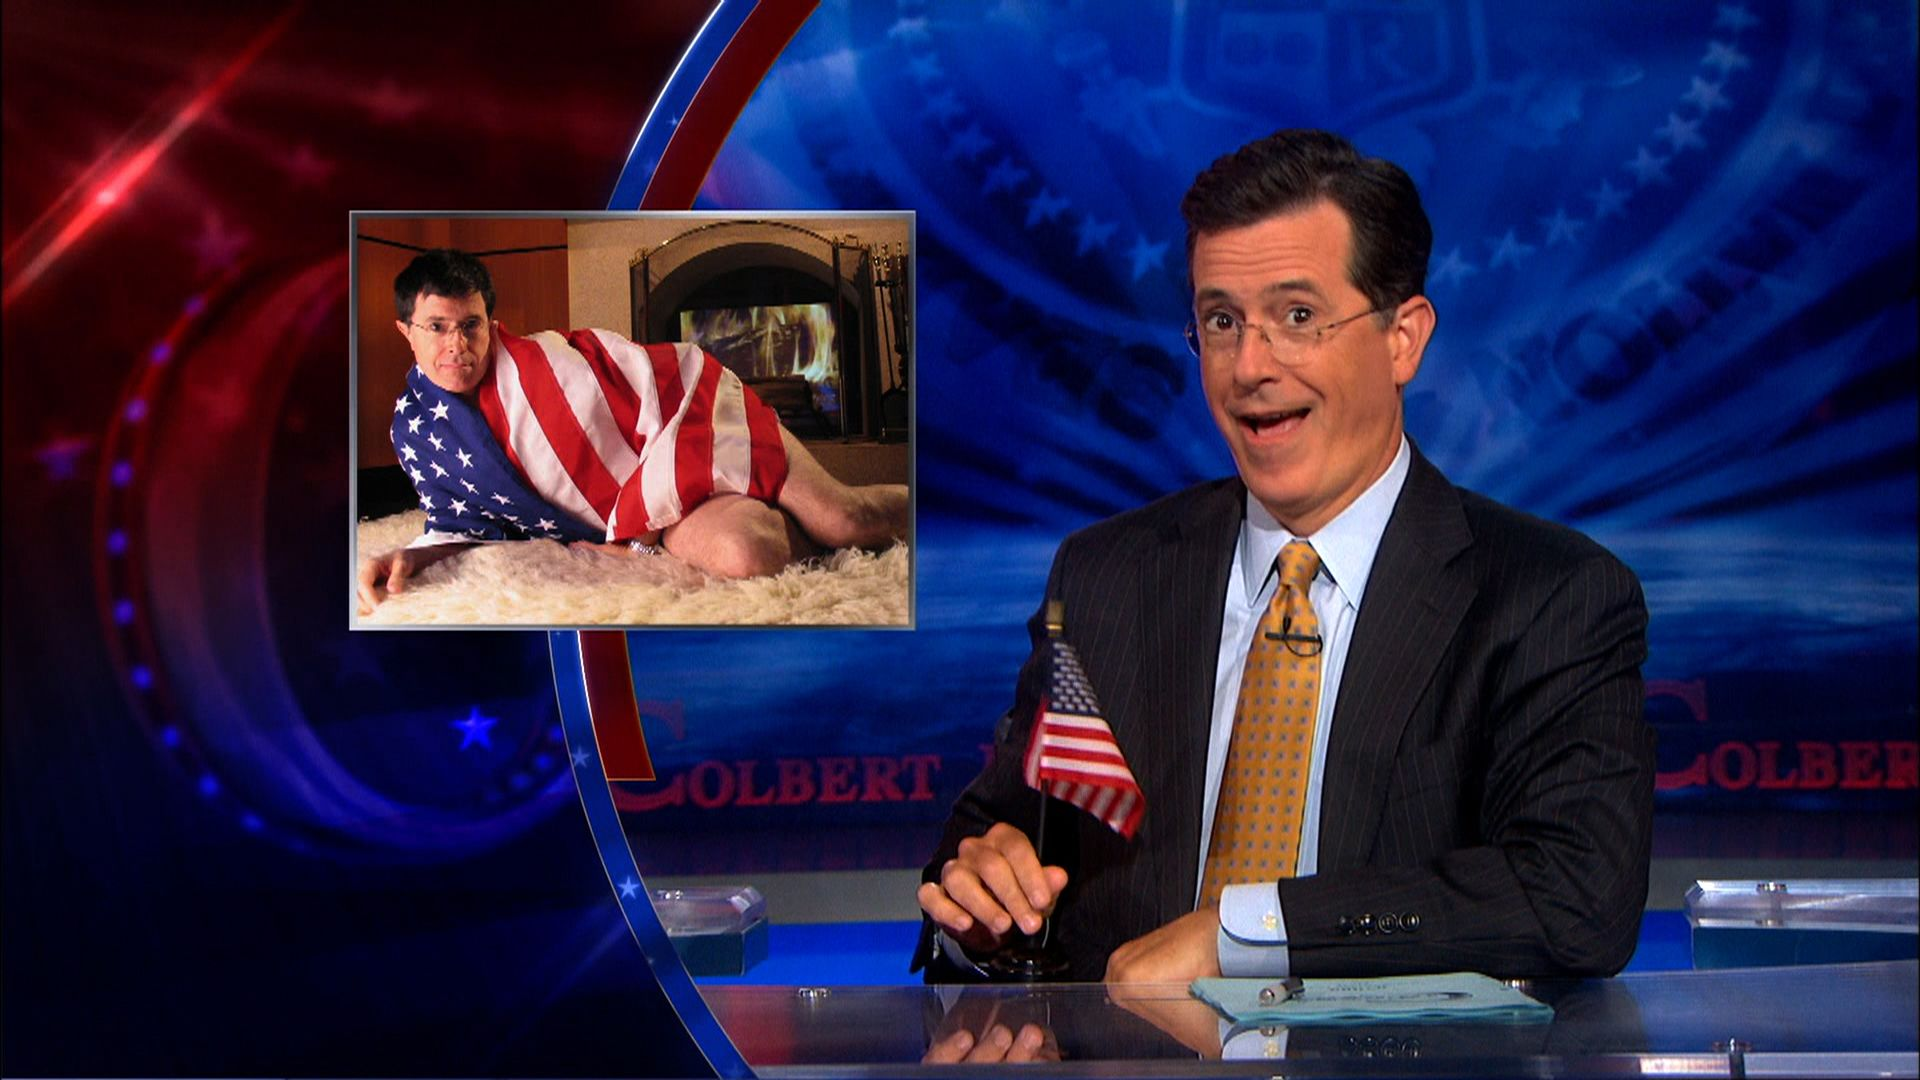 Flagworth 2012 - The Colbert Report (Video Clip) | Comedy ...